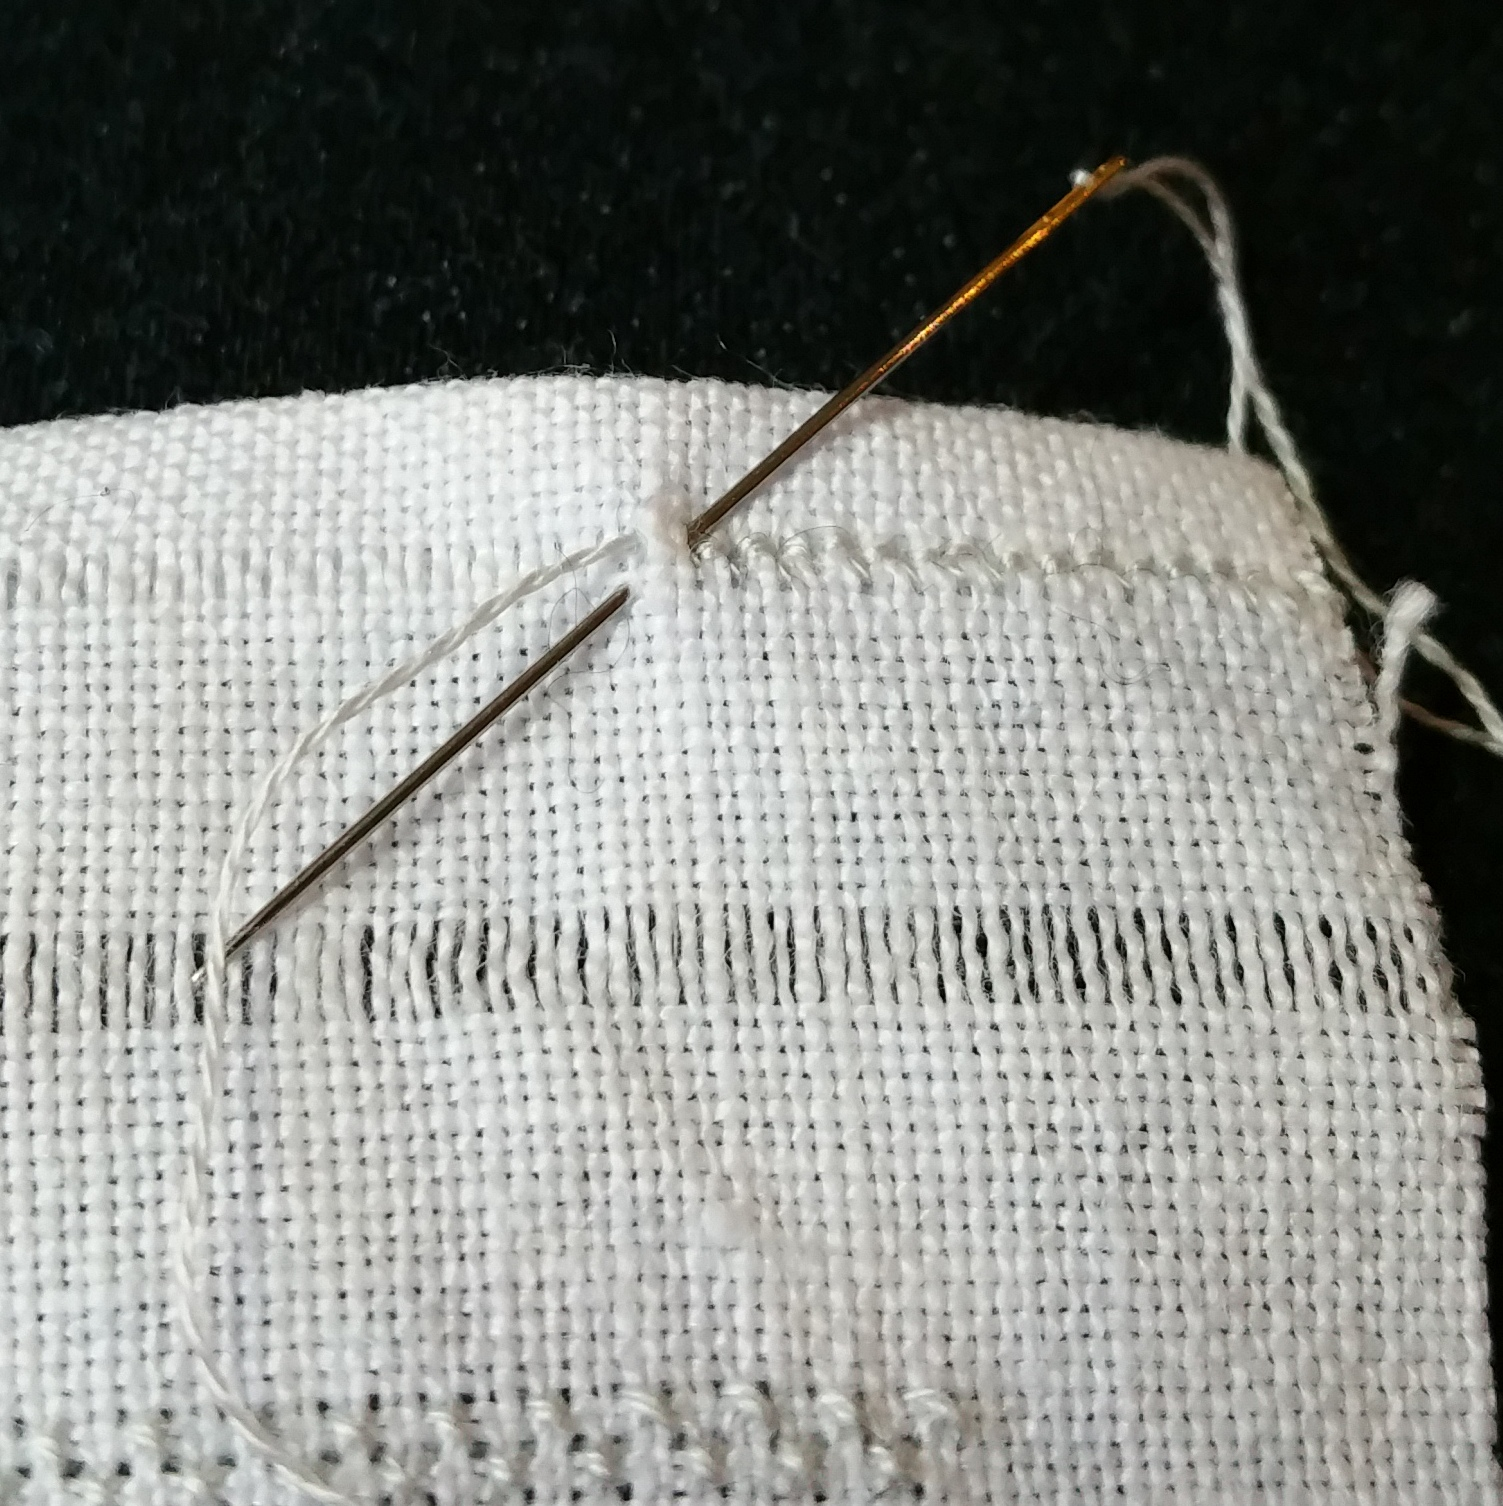 Working the hemstitch - I found it easier to change over to a sharp needle for this, since I needed to catch the bit of the folded-over fabric in my stitches.